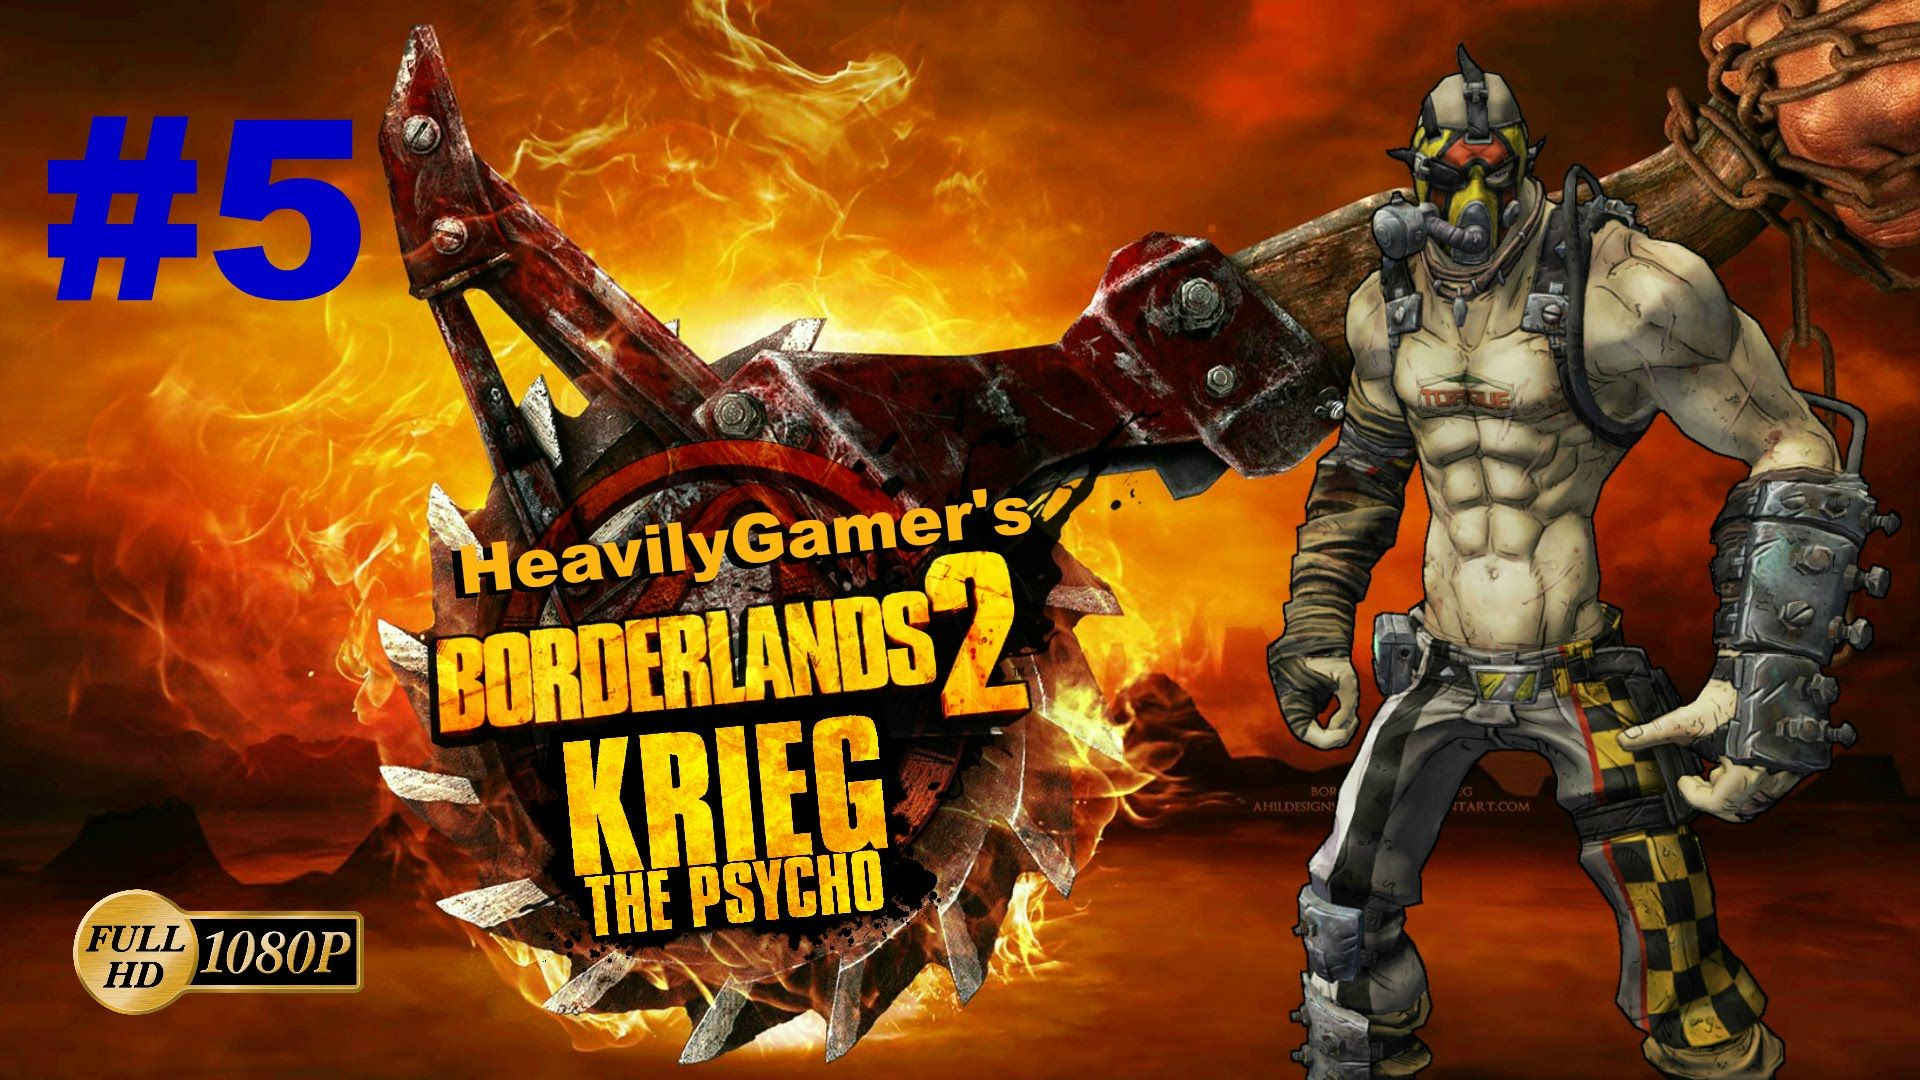 BORDERLANDS 2 | Krieg the Psycho Lets Play to 72 Part 5:Medical Mystery/...